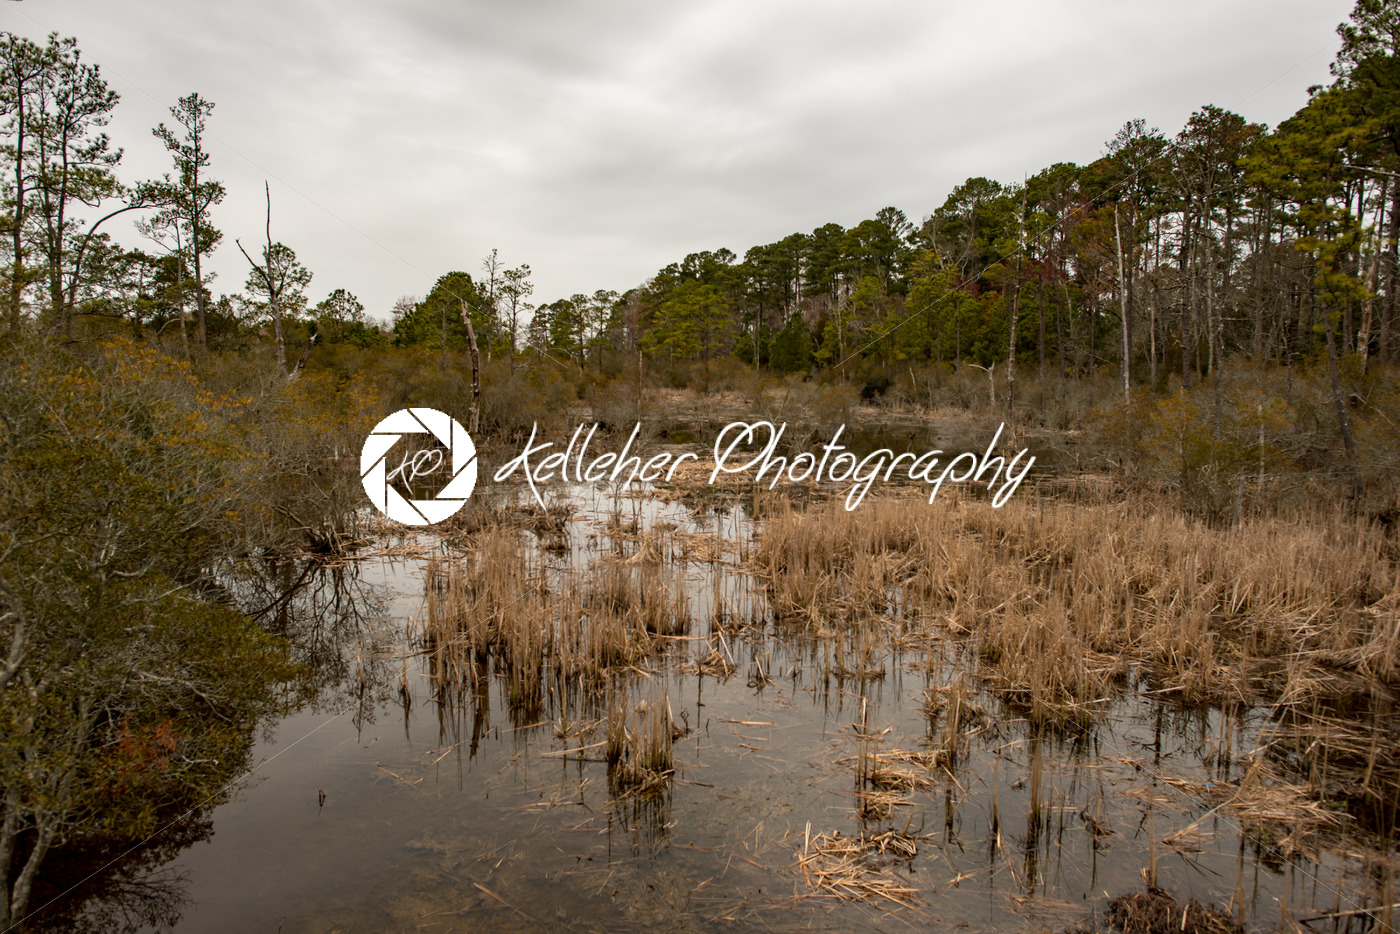 Swamp lake and trees in Jamestown, Virginia - Kelleher Photography Store